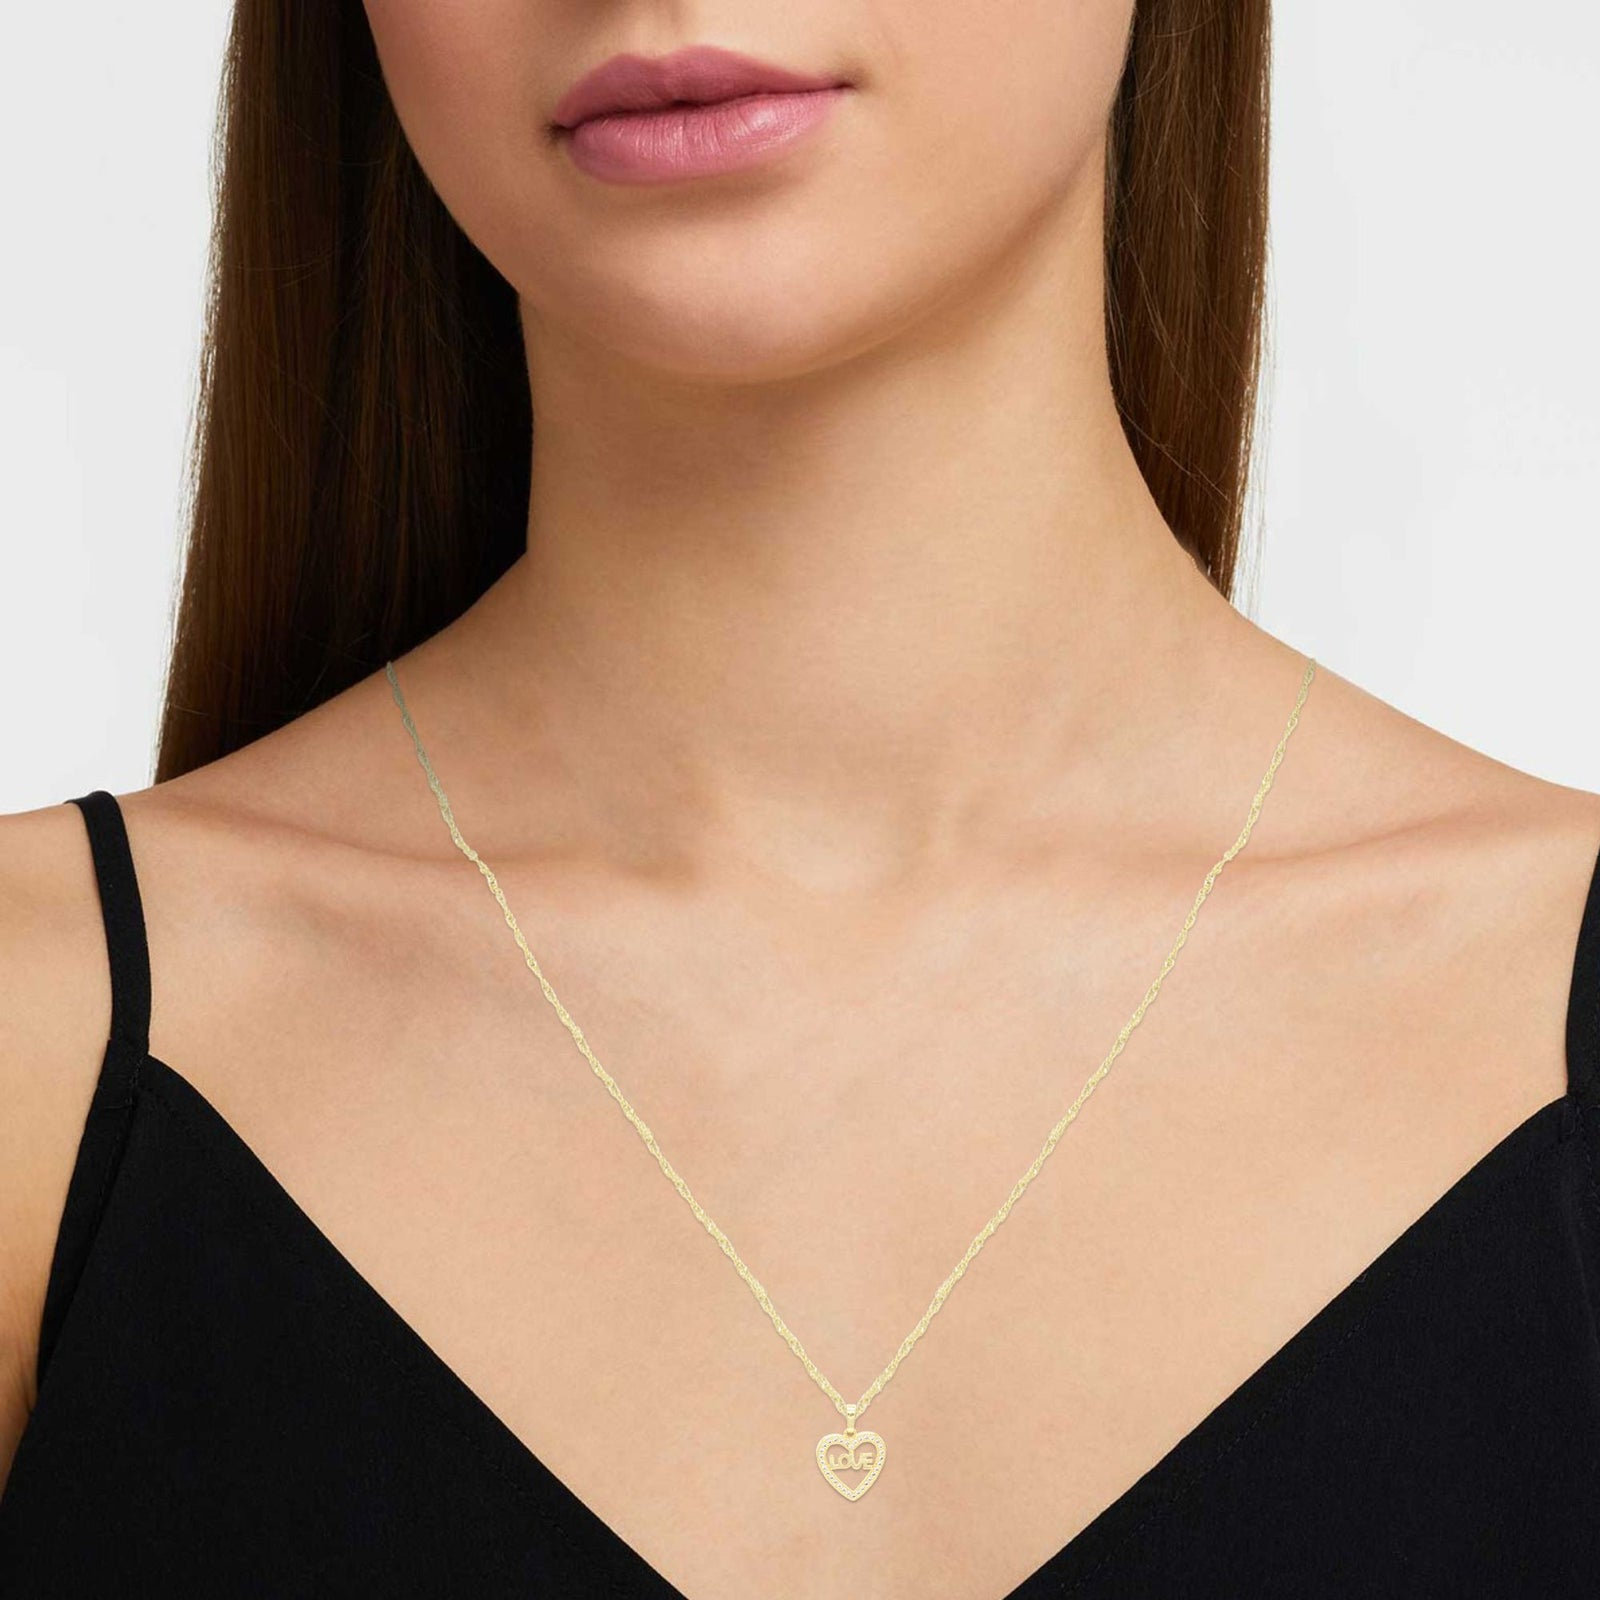 Heart Love Cubic Zirconia Pendant With Necklace Set 14K Gold Filled